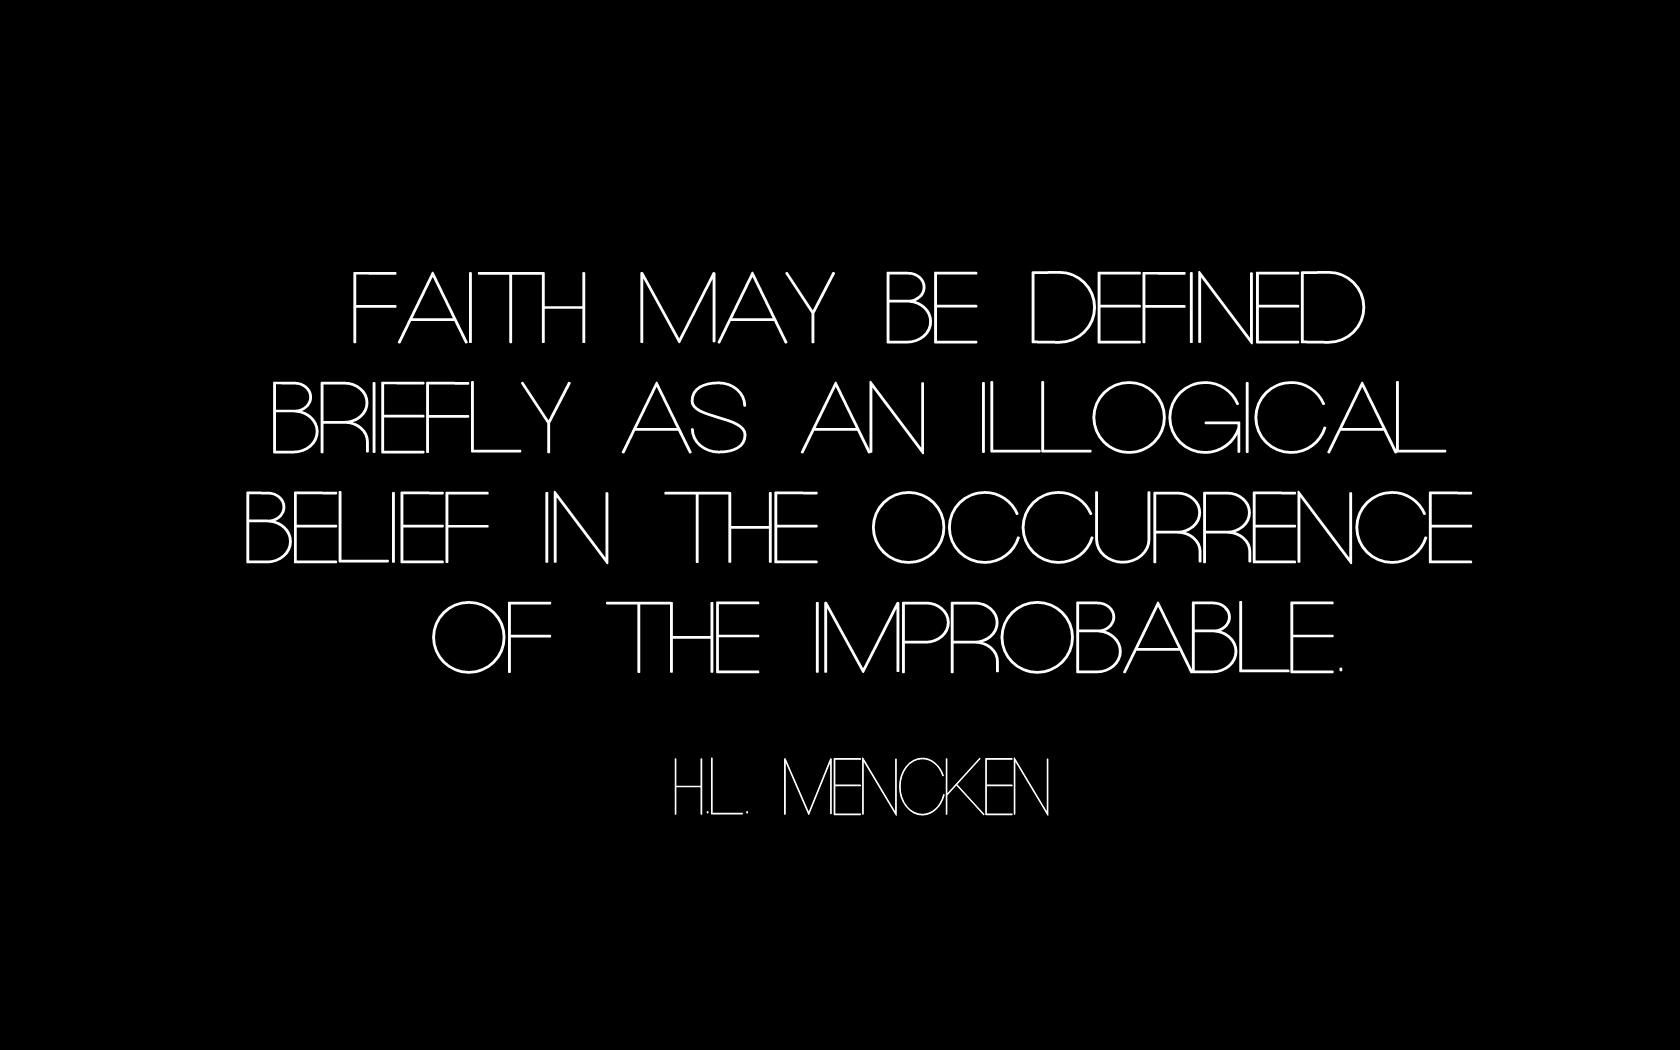 Black Wallpaper Hd Faith Text Quotes Atheism H L Mencken Wallpaper